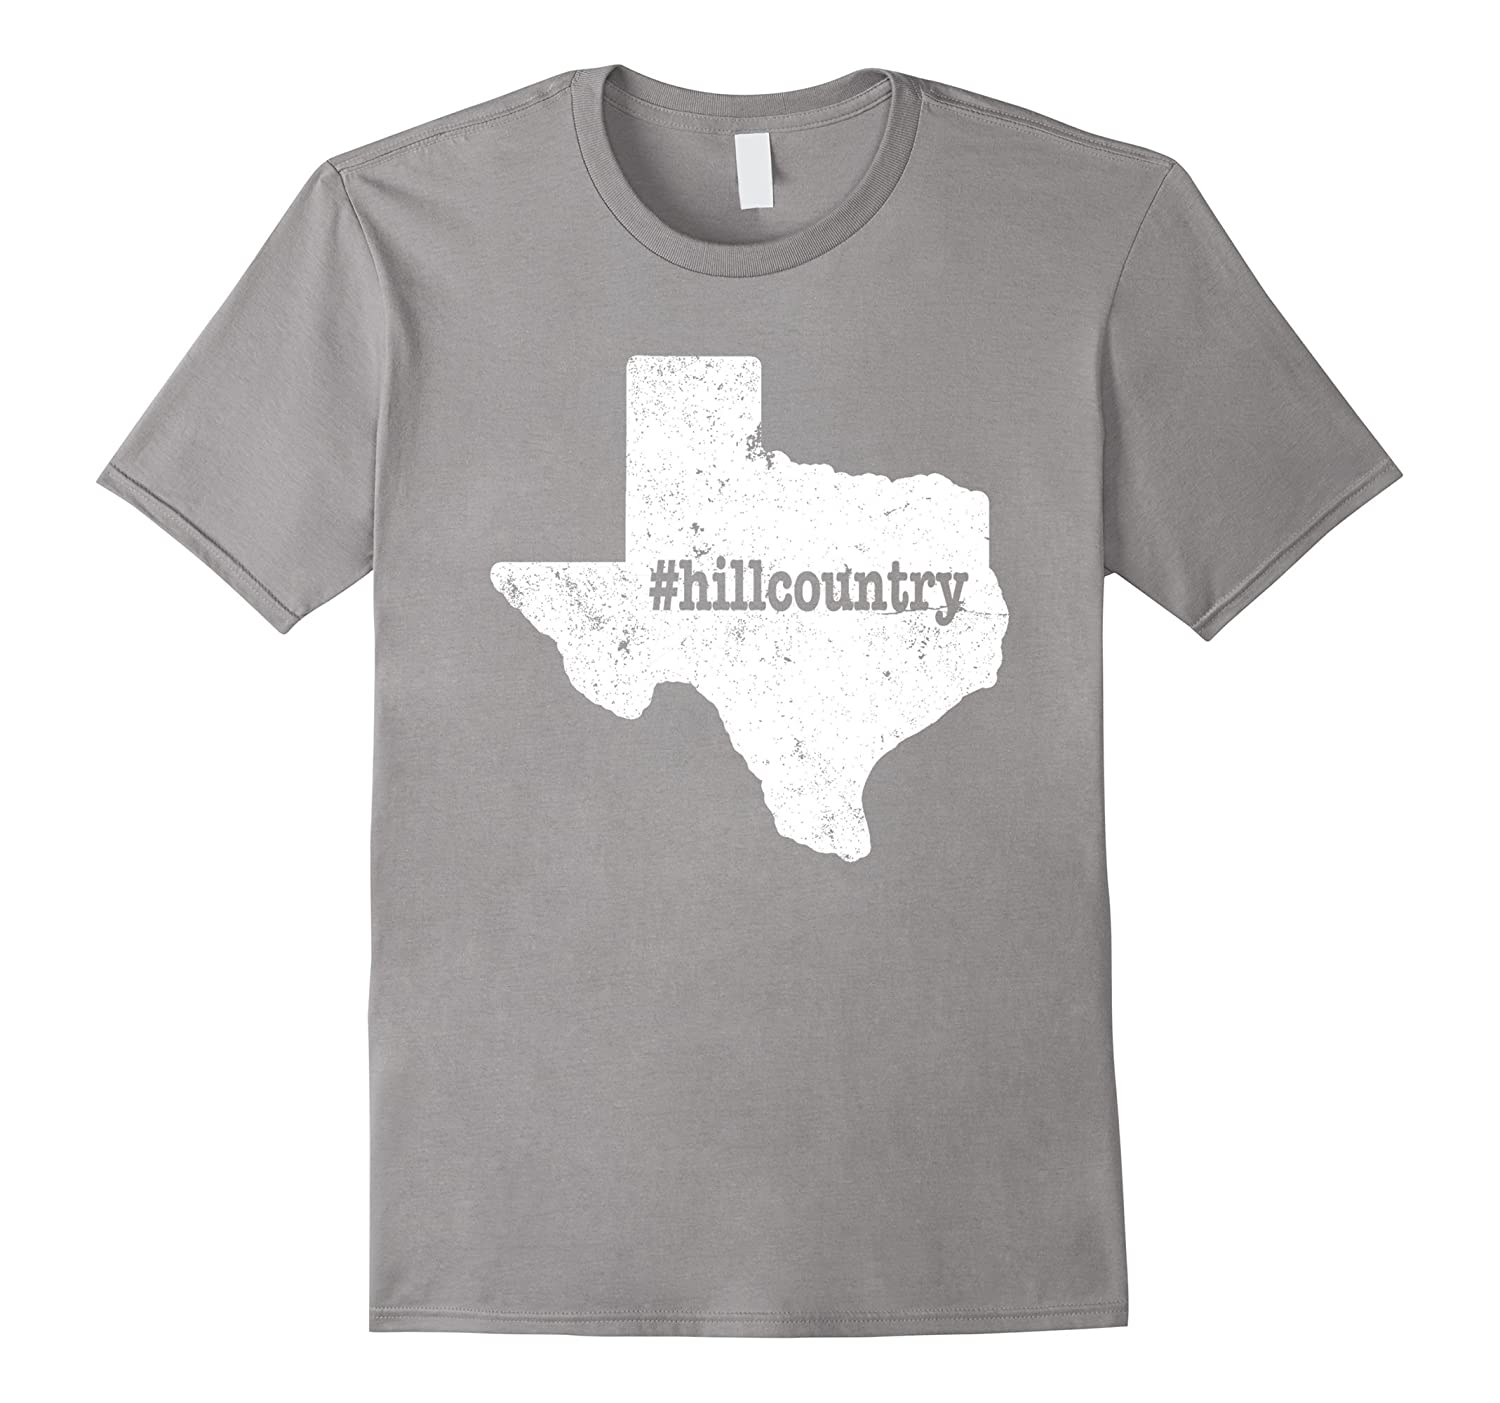 Texas Hill Country Shirt Texas Shirt Texas Gifts Texas Pride-PL